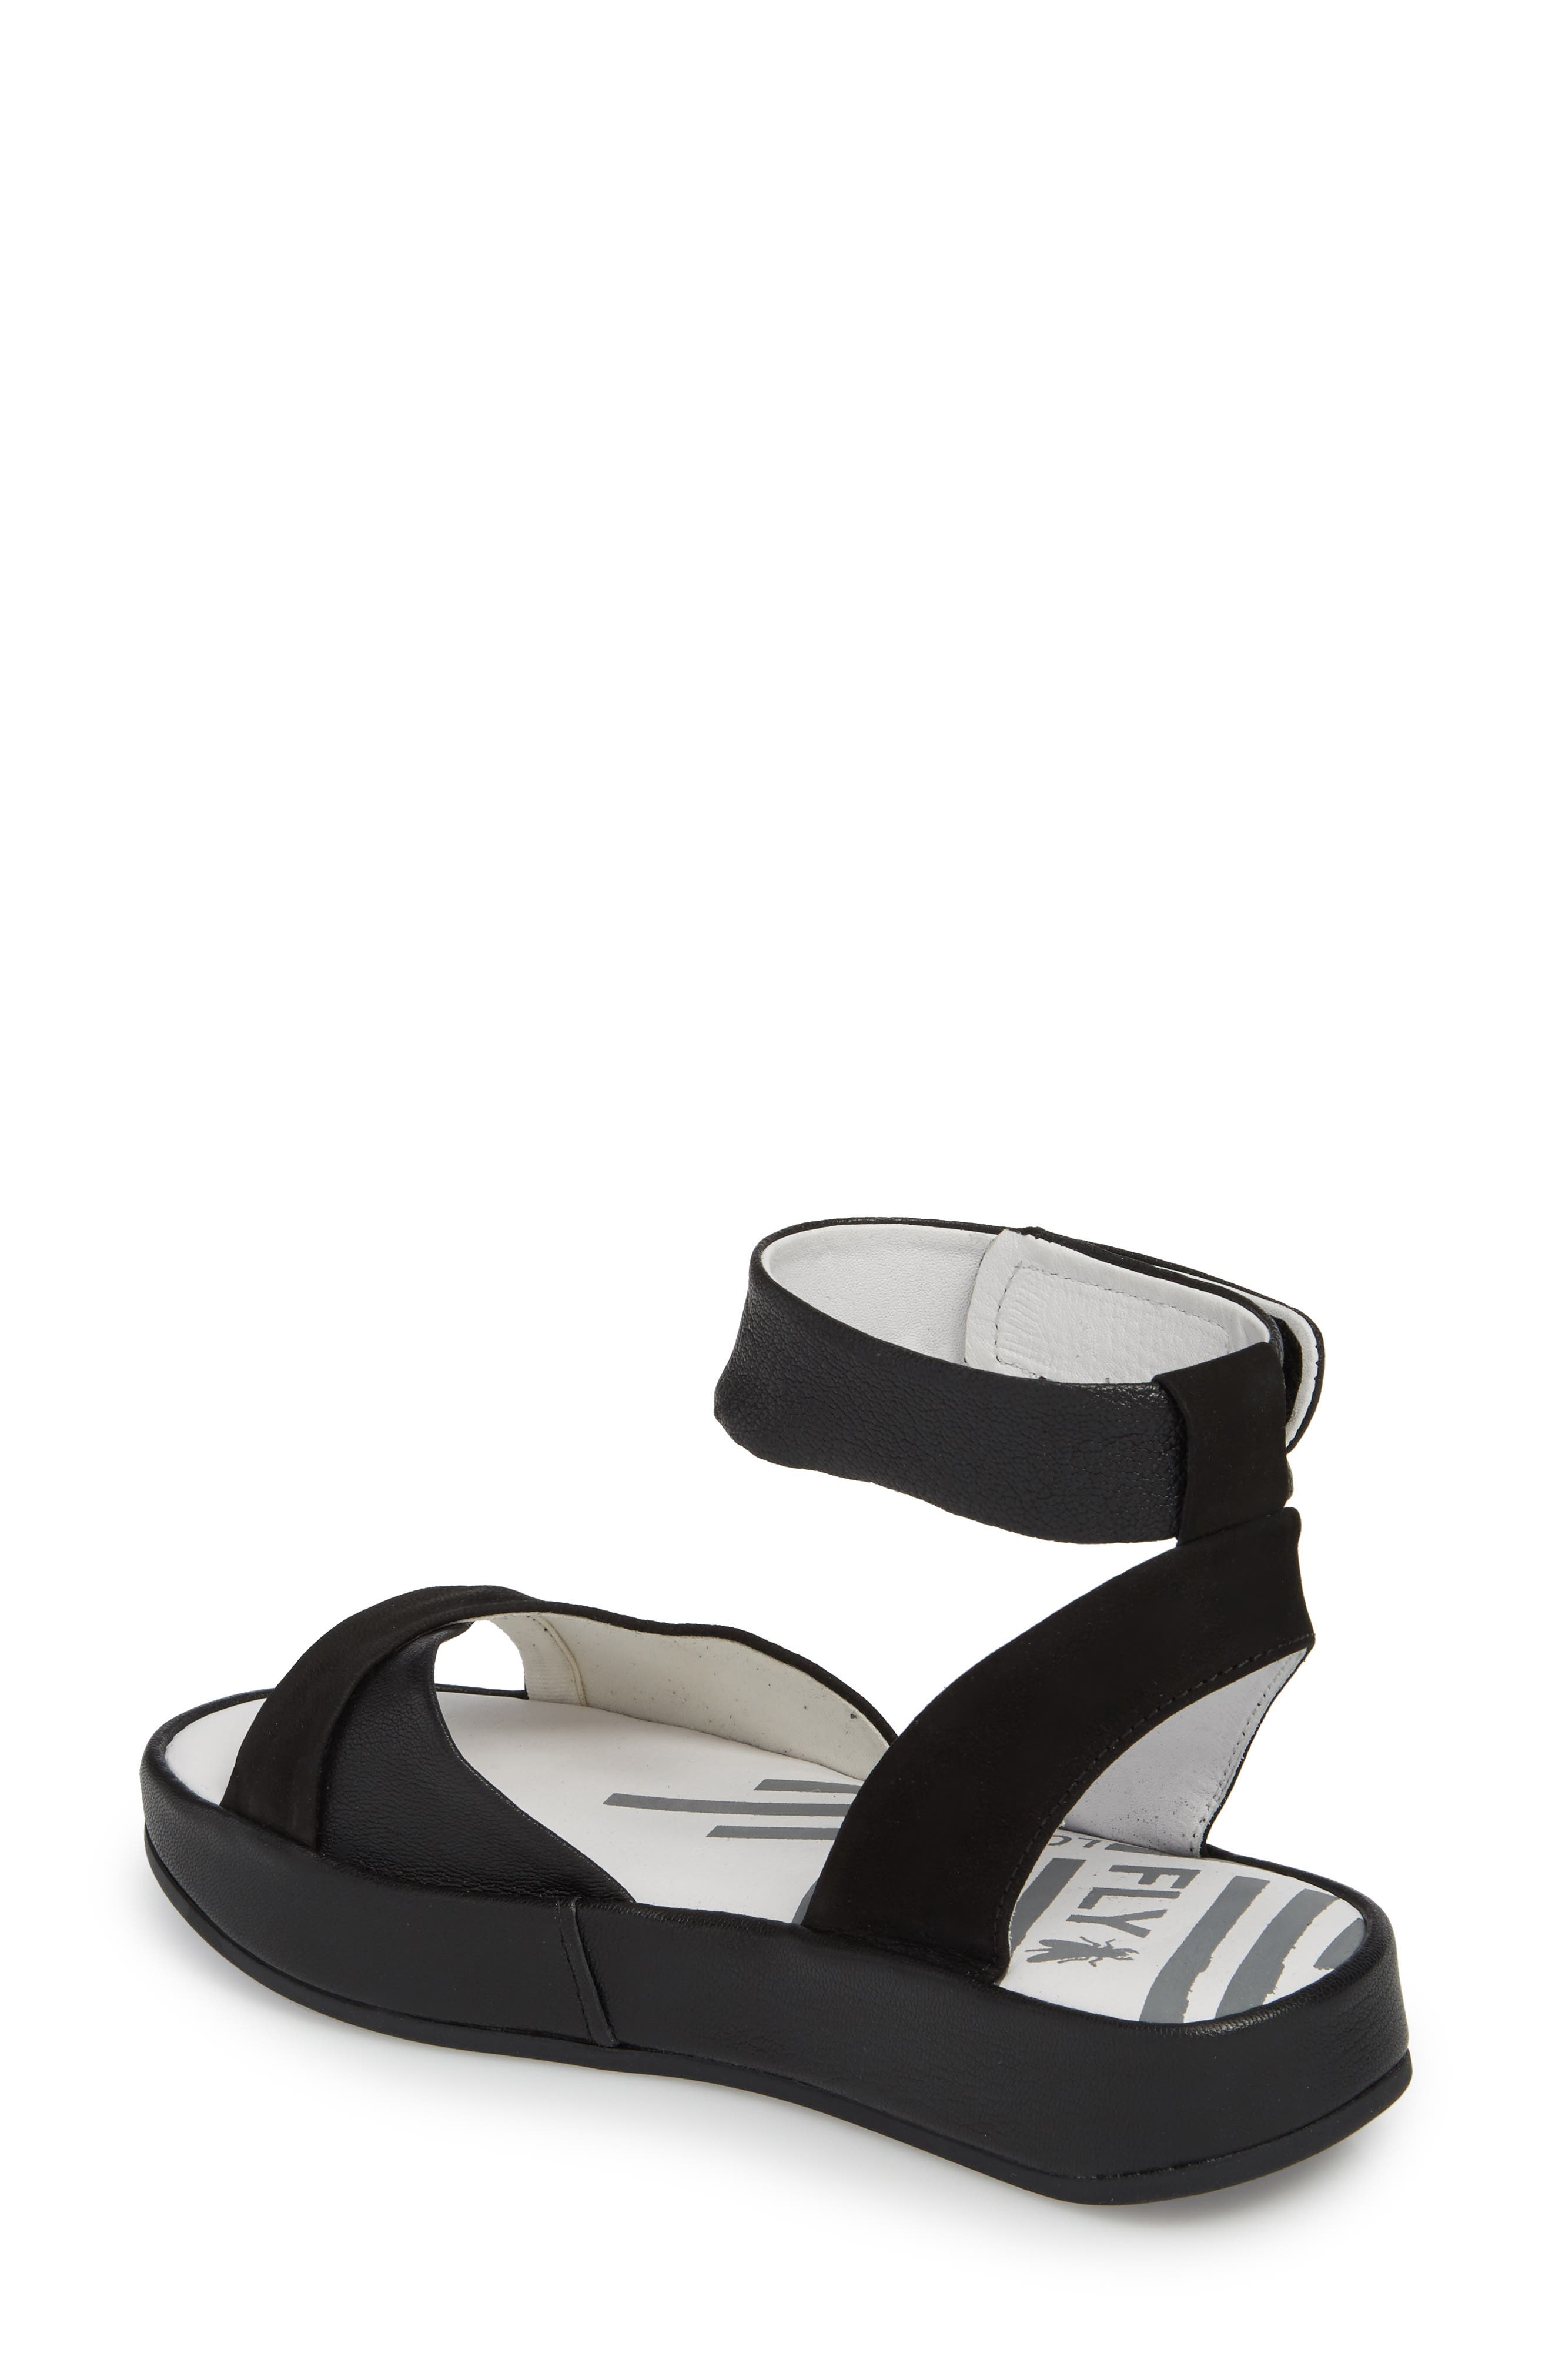 Bibb Sandal,                             Alternate thumbnail 2, color,                             BLACK MIX LEATHER